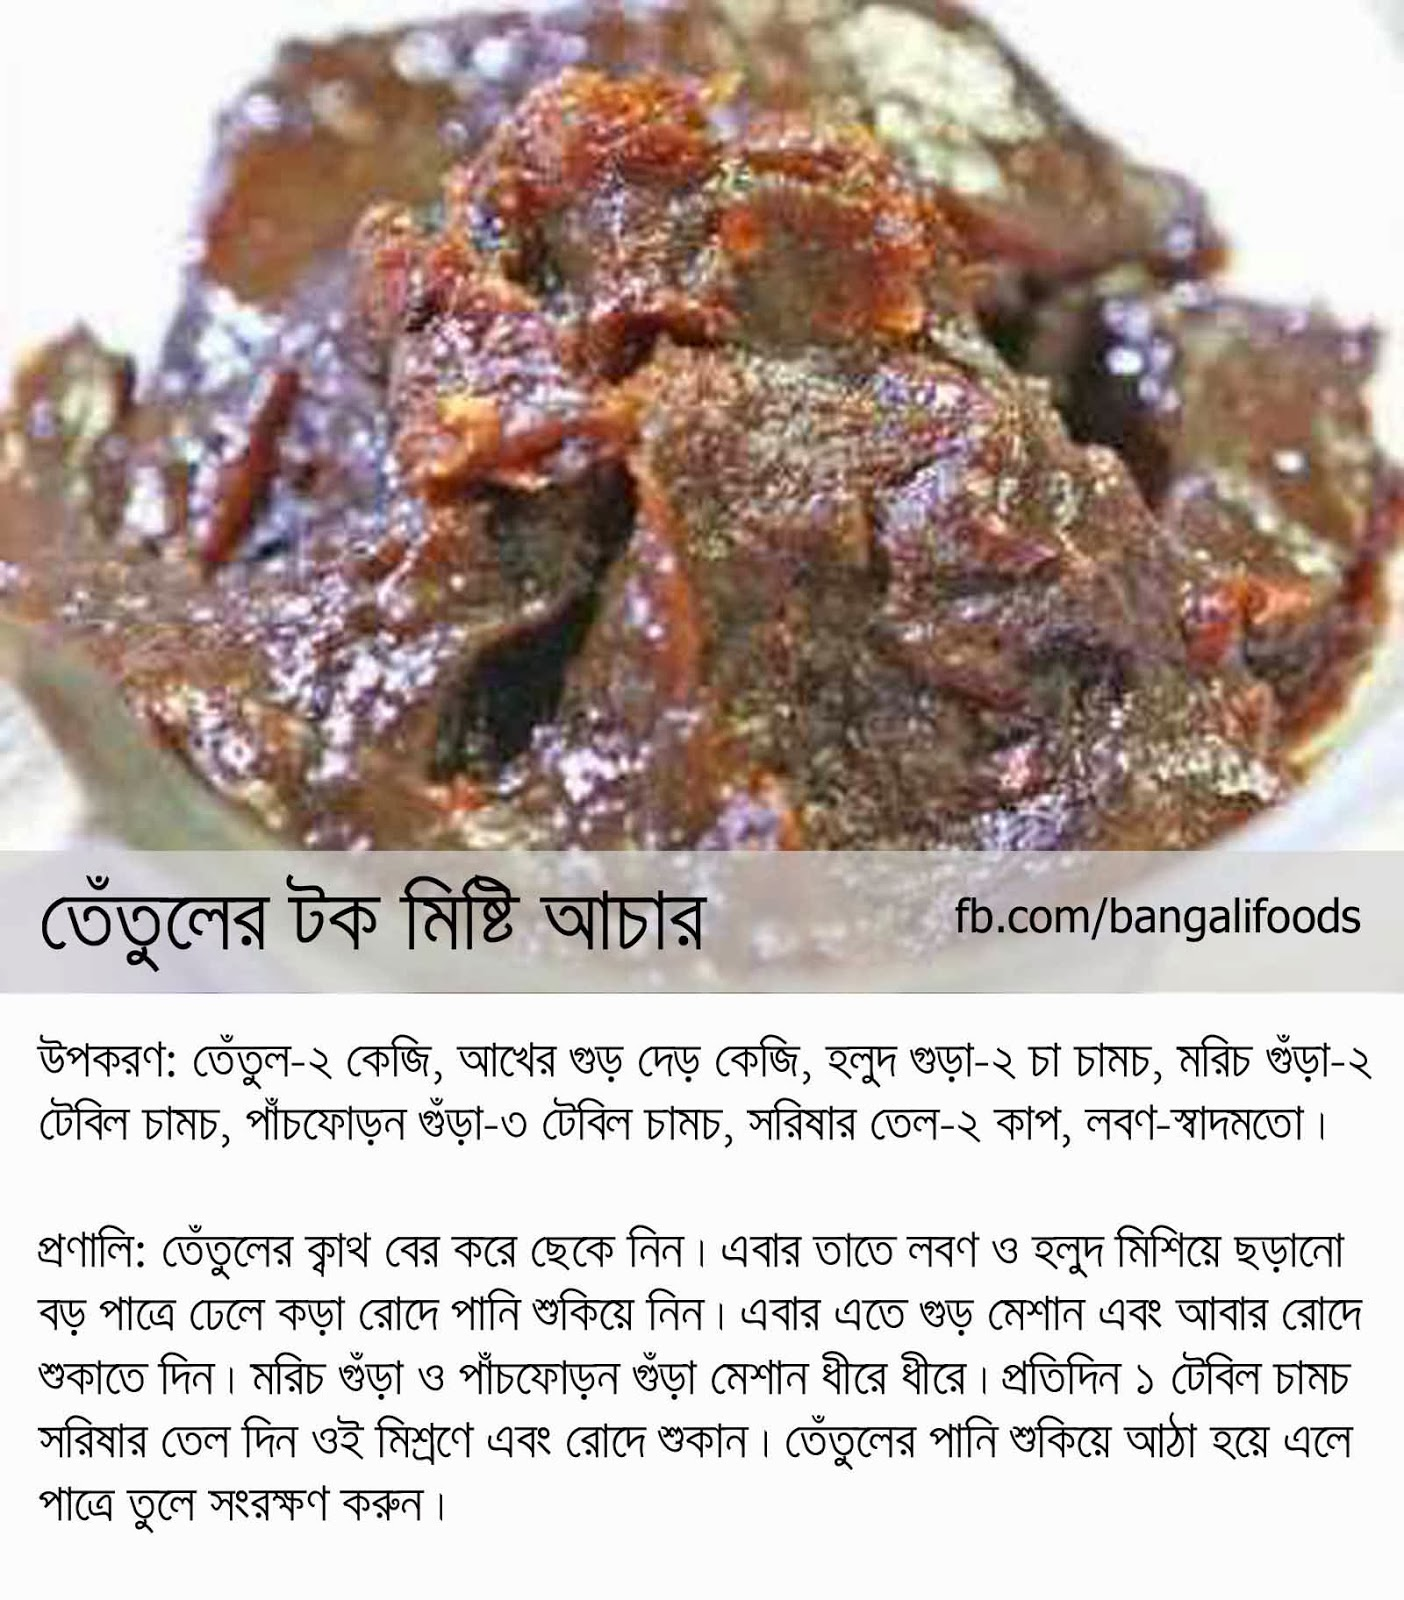 Bangali foods yummy pickles recipe in bangla tamarind pickles recipe in bangla font forumfinder Gallery